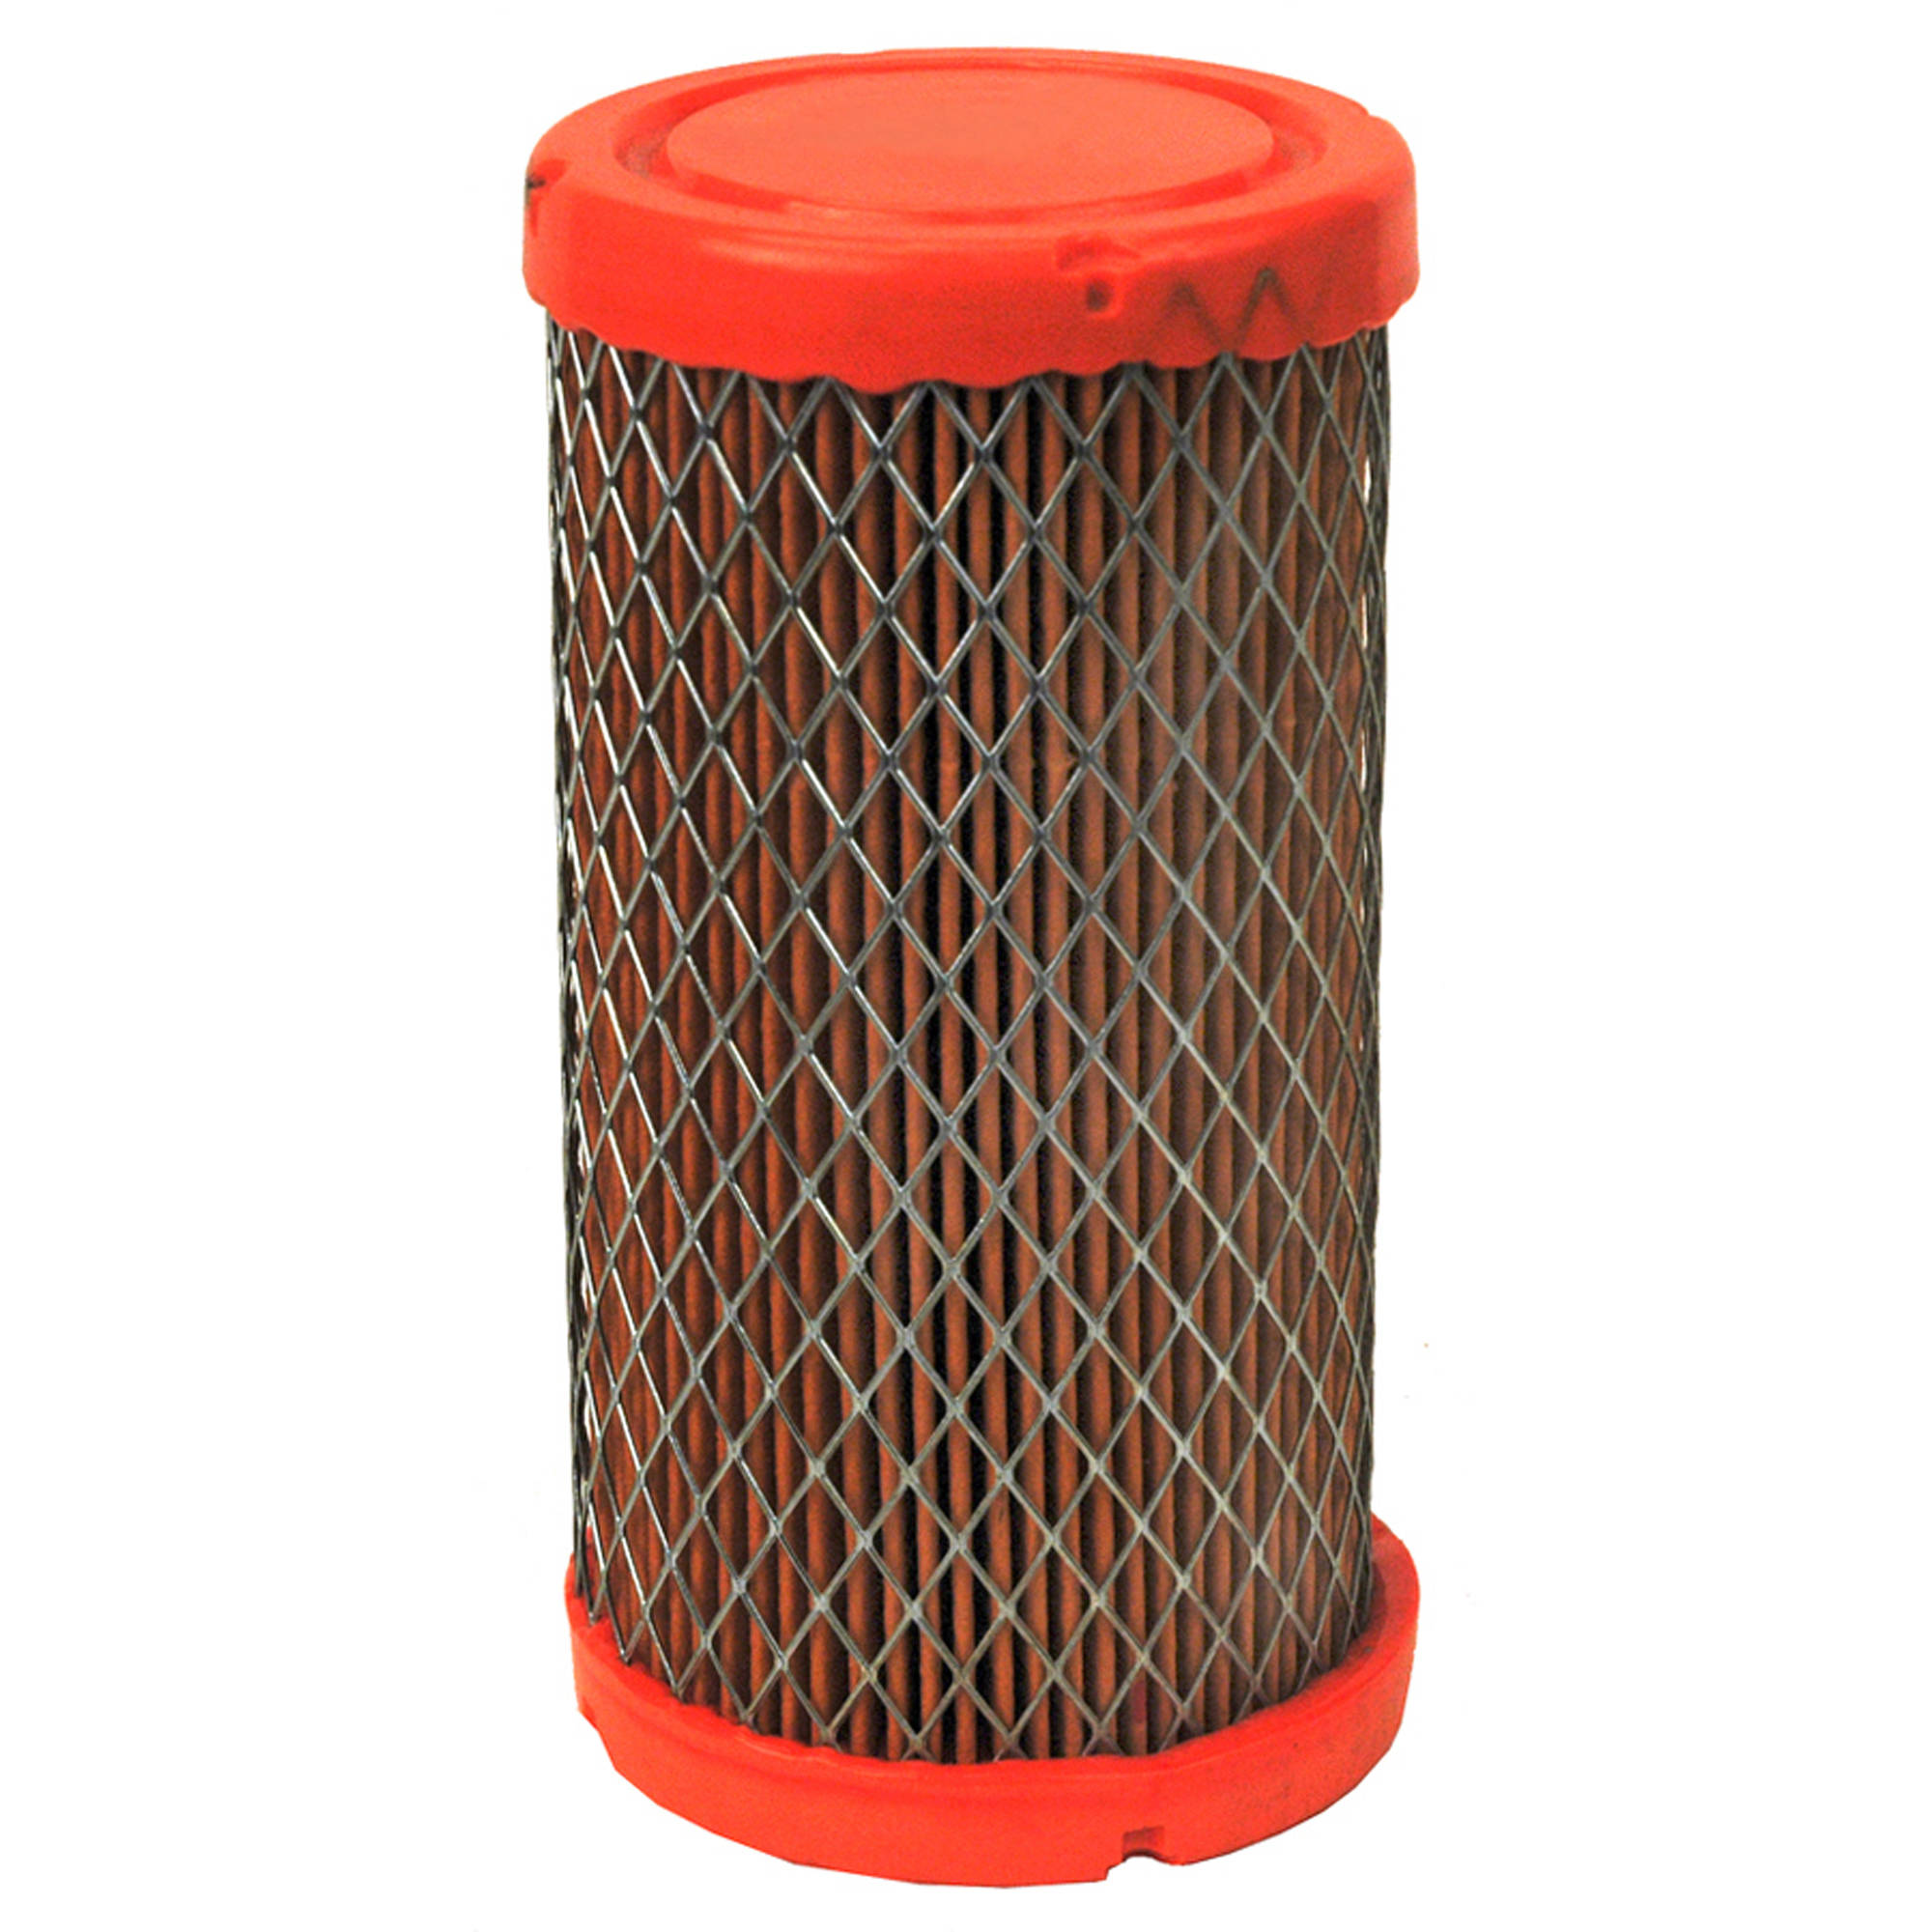 Maxpower 334397 Air Filter & Pre-Filter For Briggs & Stratton